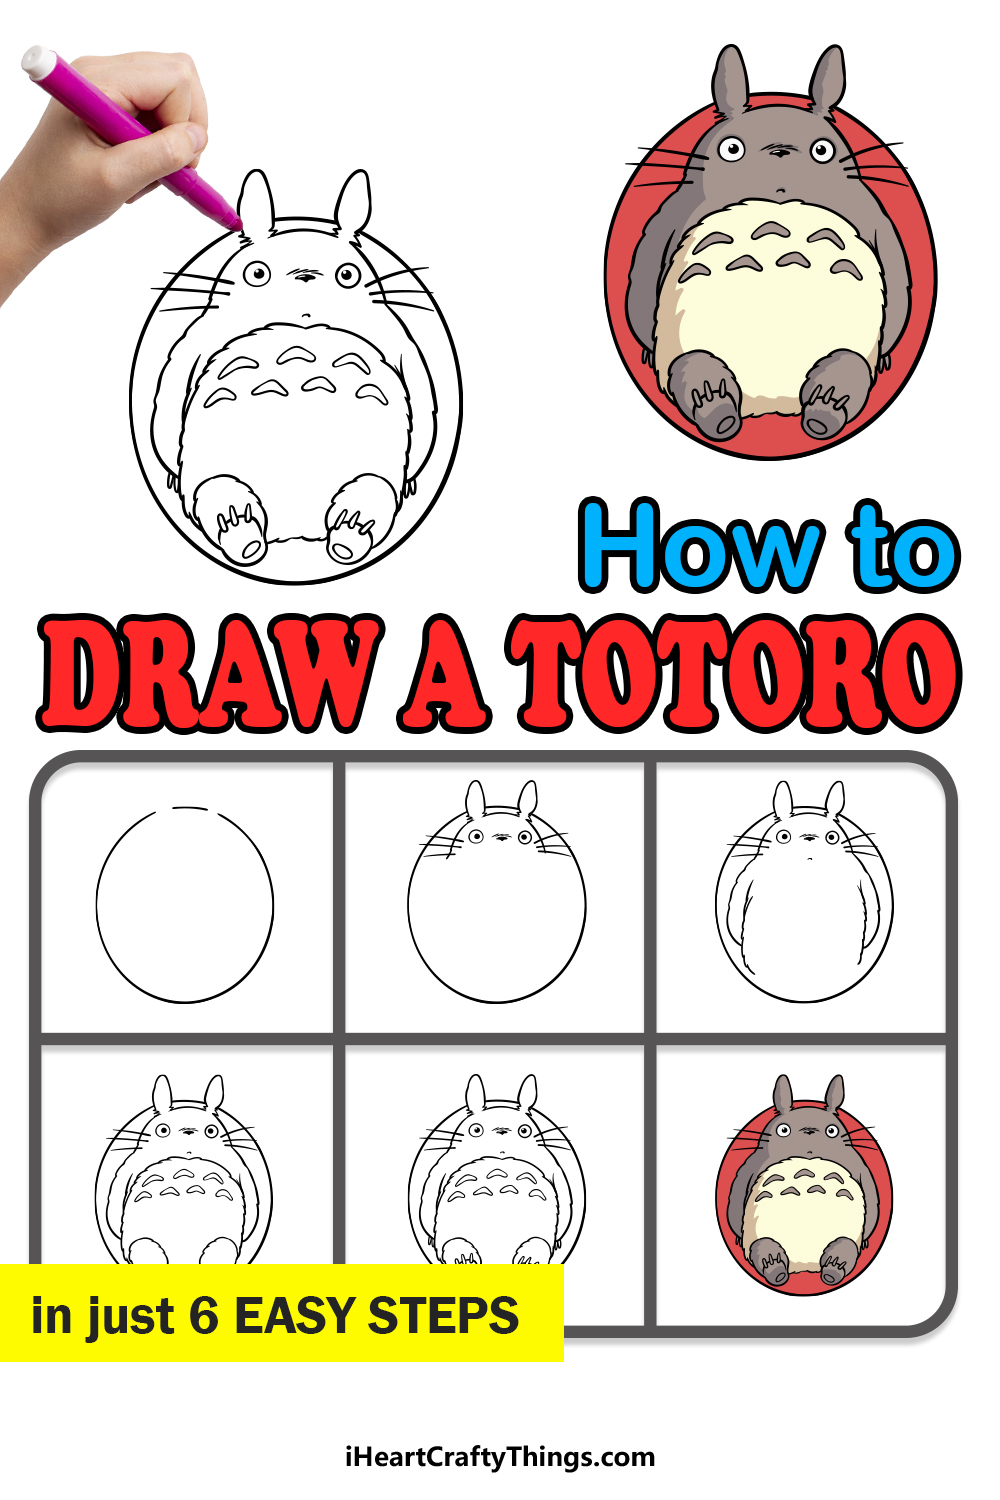 how to draw Totoro in 6 easy steps